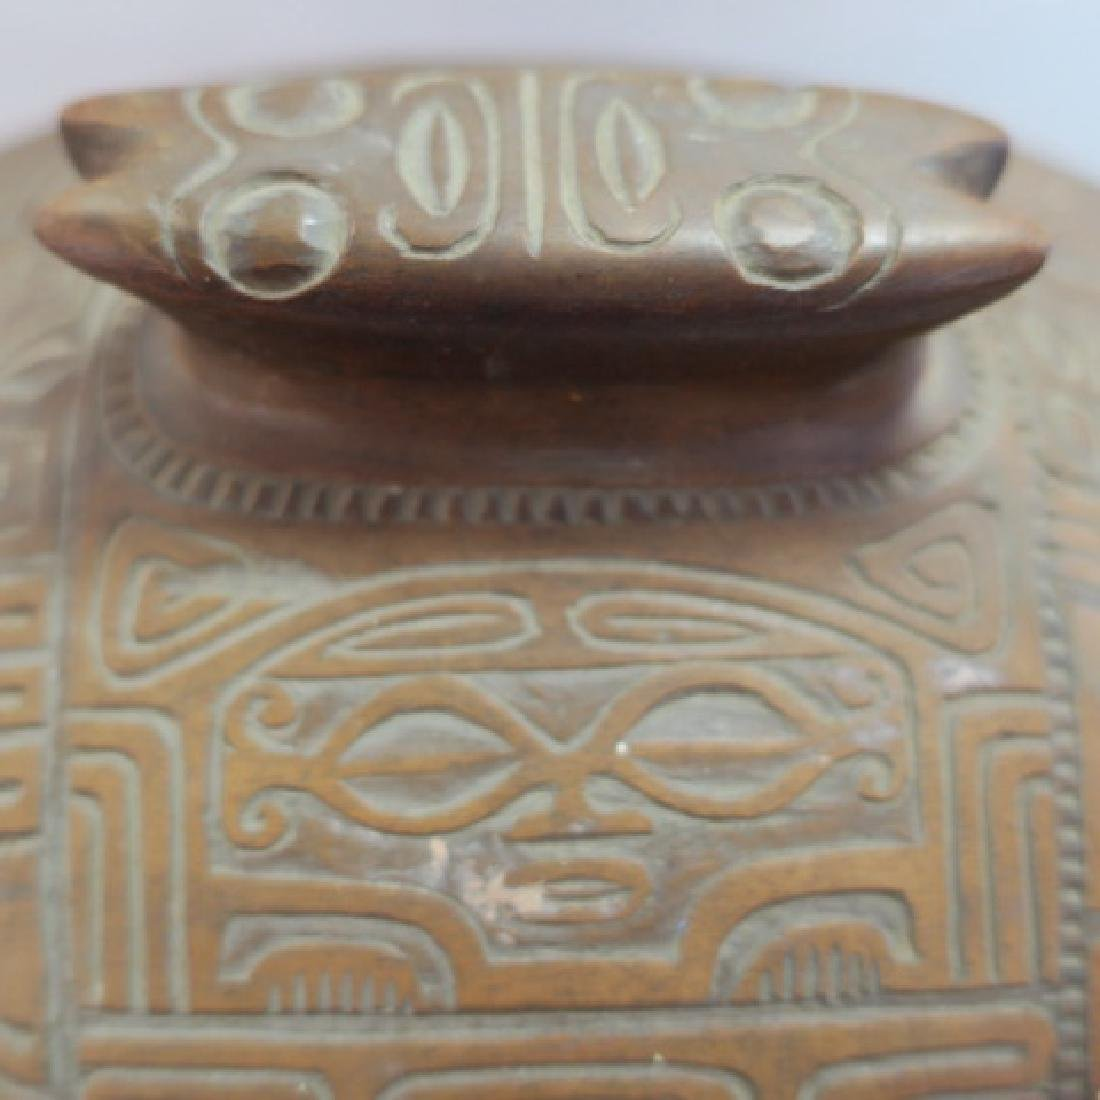 Marquesas Islands Highly Carved Koa Wood Lidded Bowl: - 5